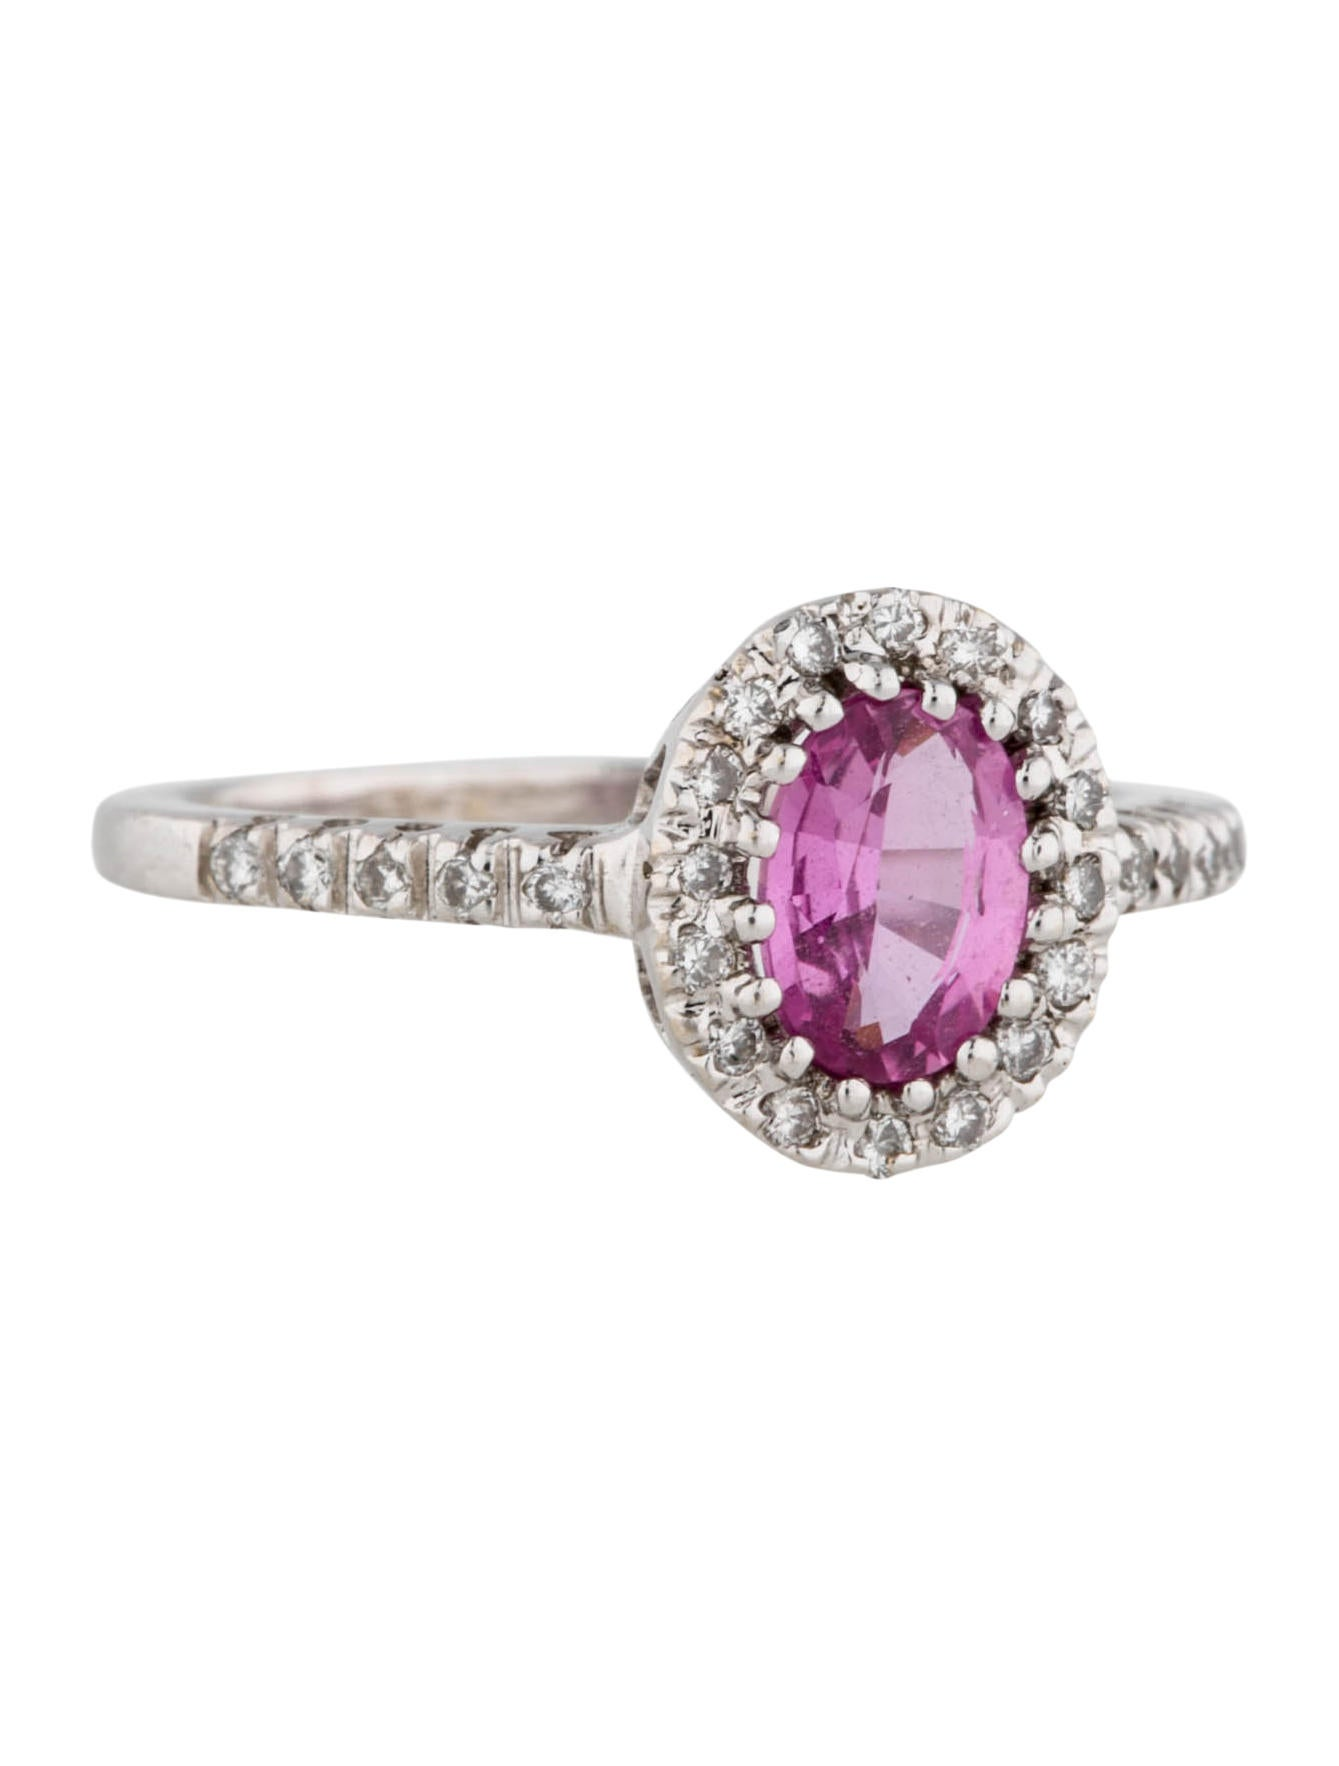 Pink Sapphire Ring With Diamond Accents